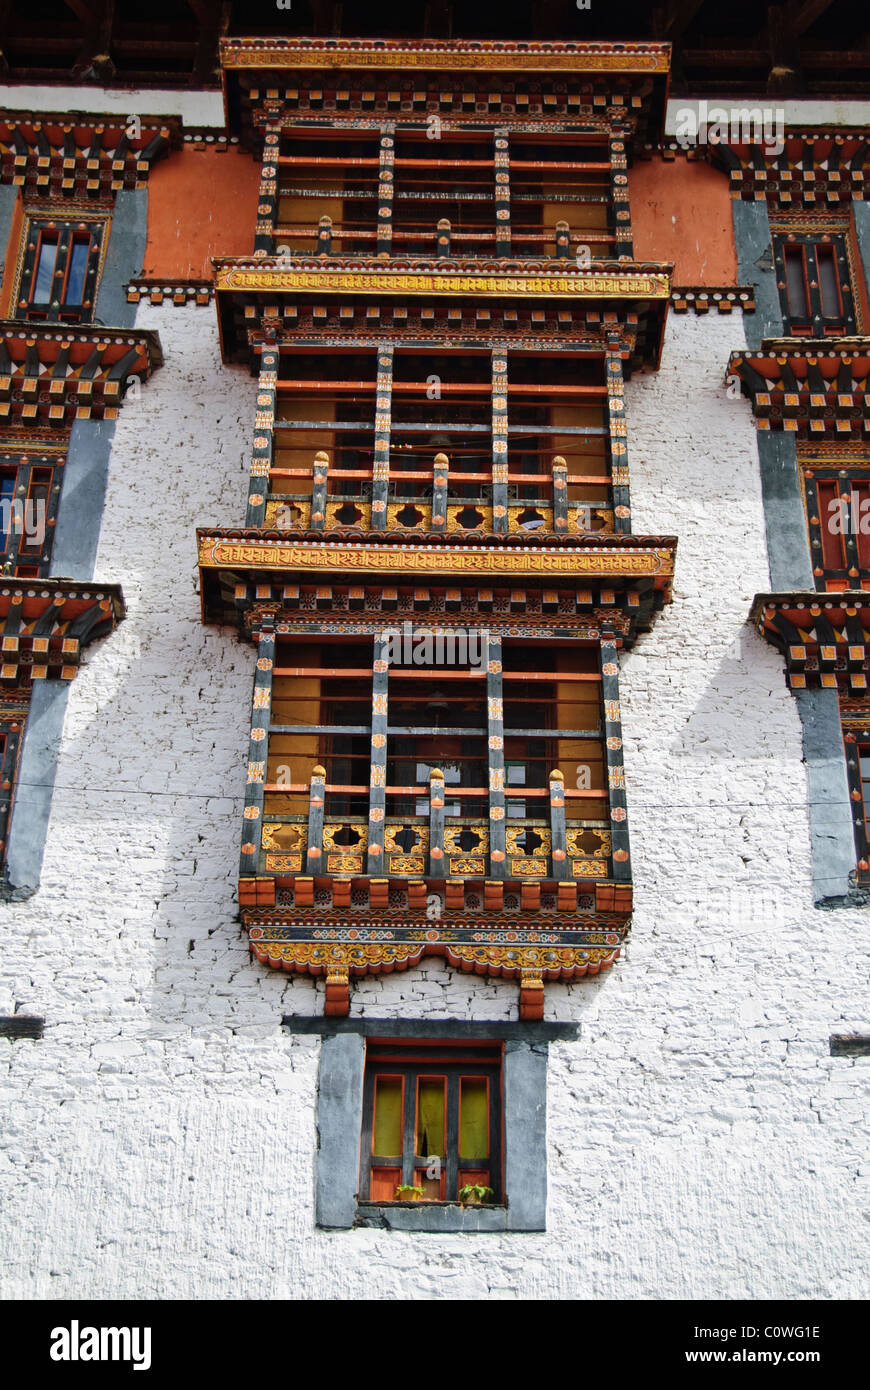 Traditional style building of Bhutan, Paro Dzong - Stock Image